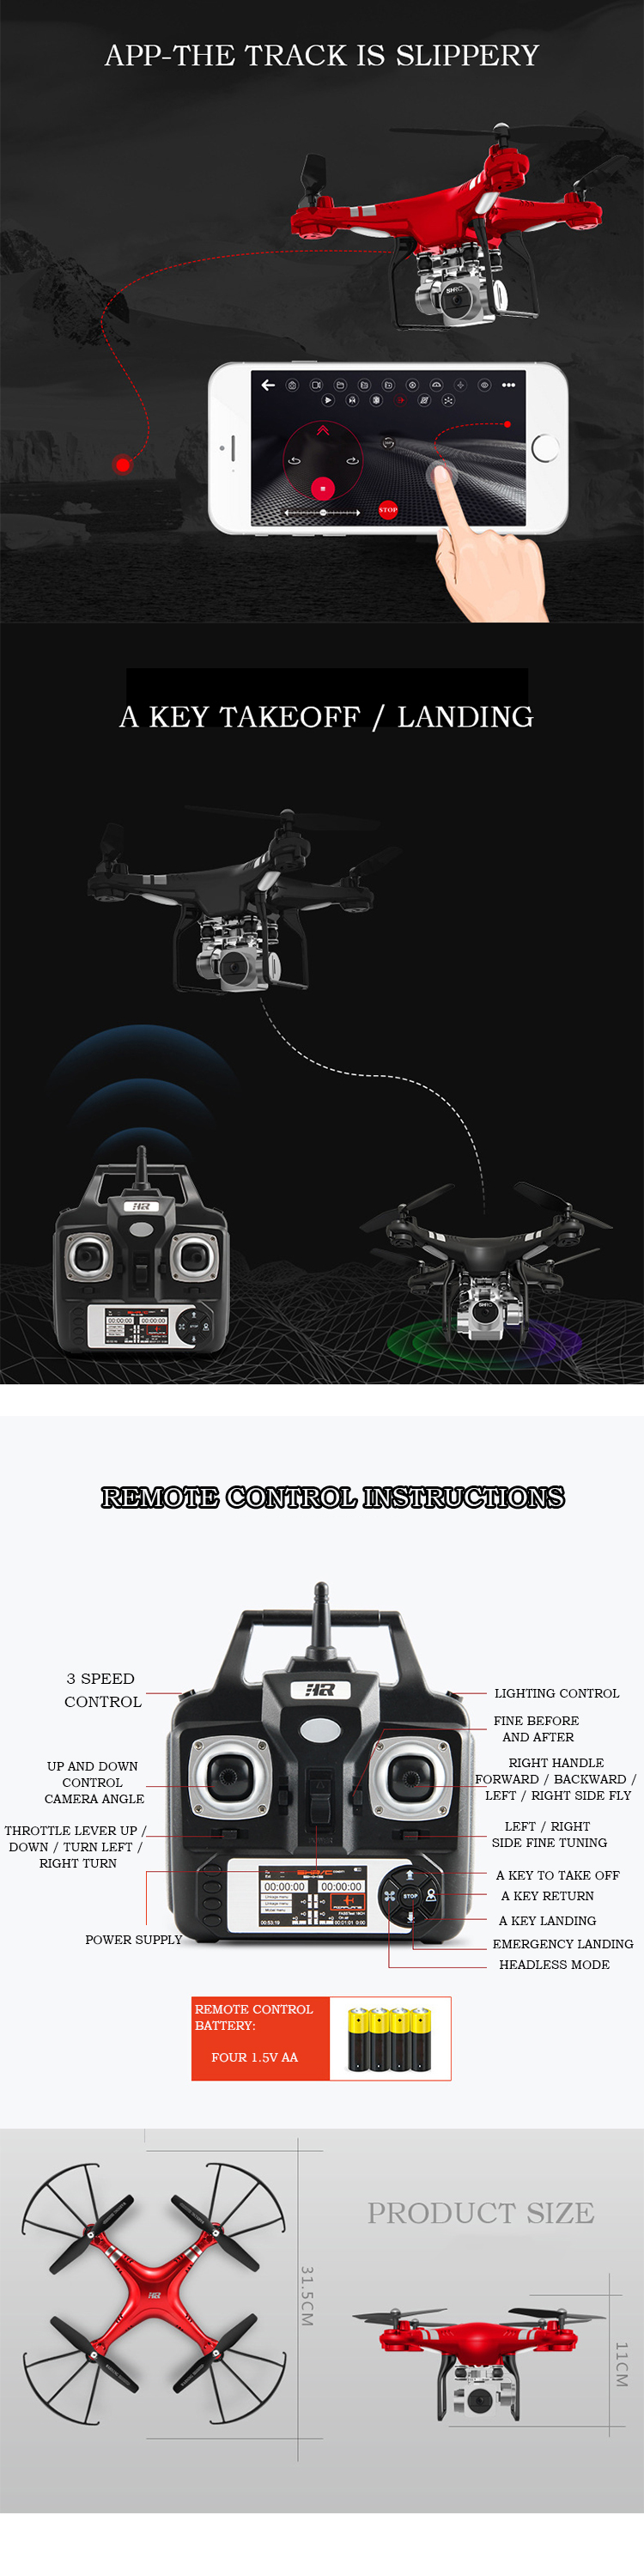 5MP HD Camera Drone Wifi FPV Live Quadcopter Smart Altitude Hold Hover RC Helicopter 2.4G 6 Axis Gyro Drone drones with camera 4